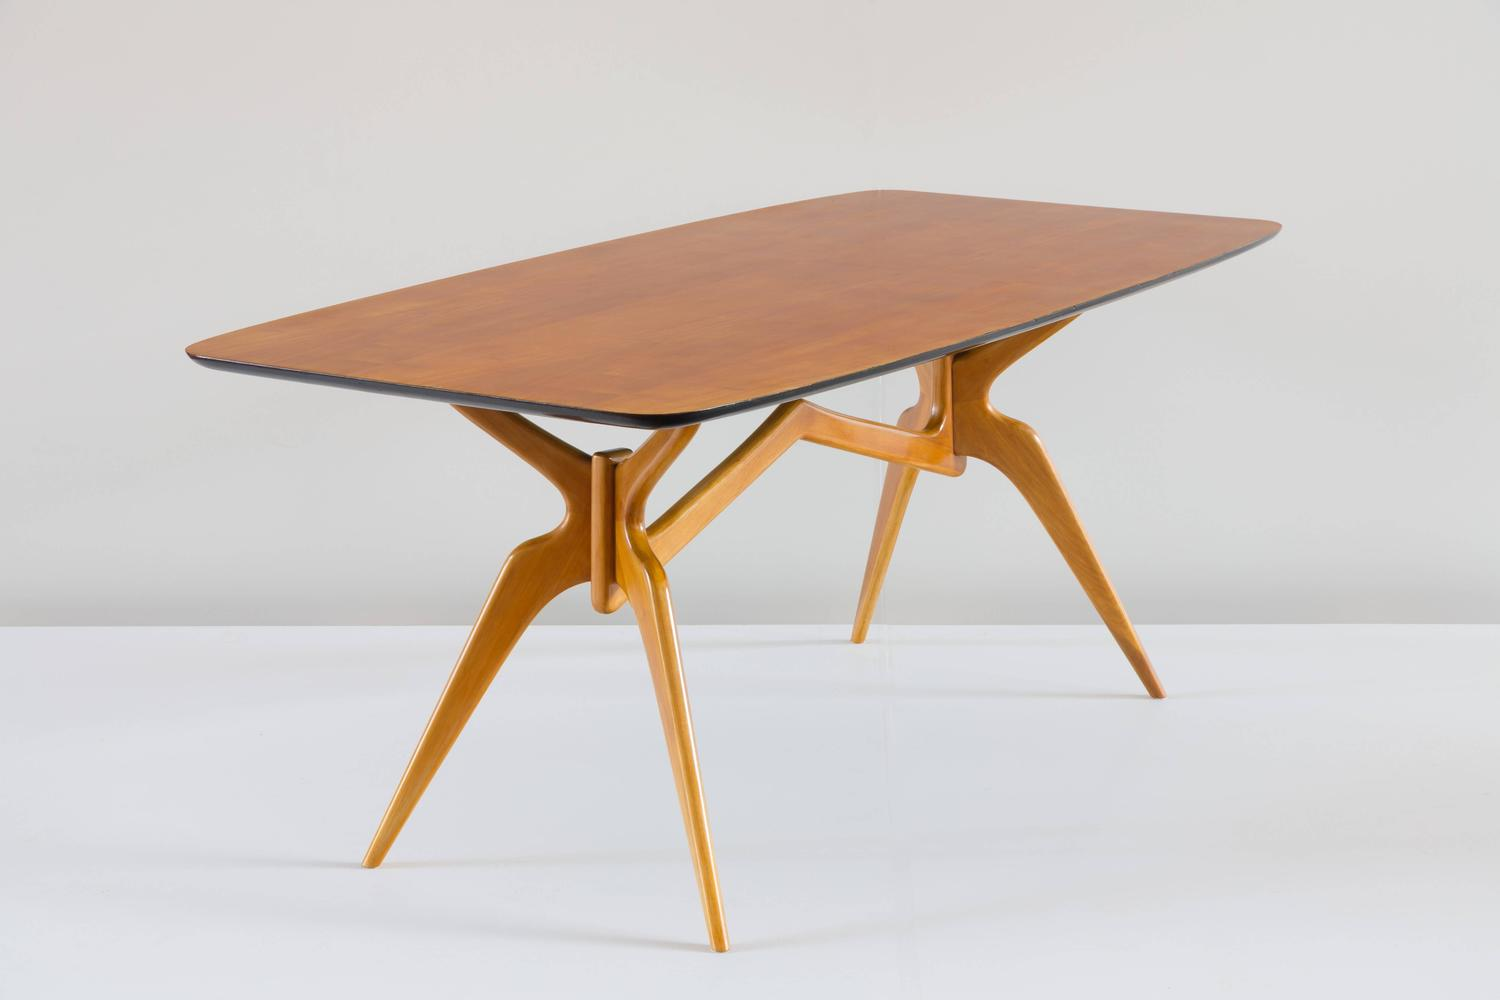 Sculptural Blonde Dining Table Attributed To Ico Parisi